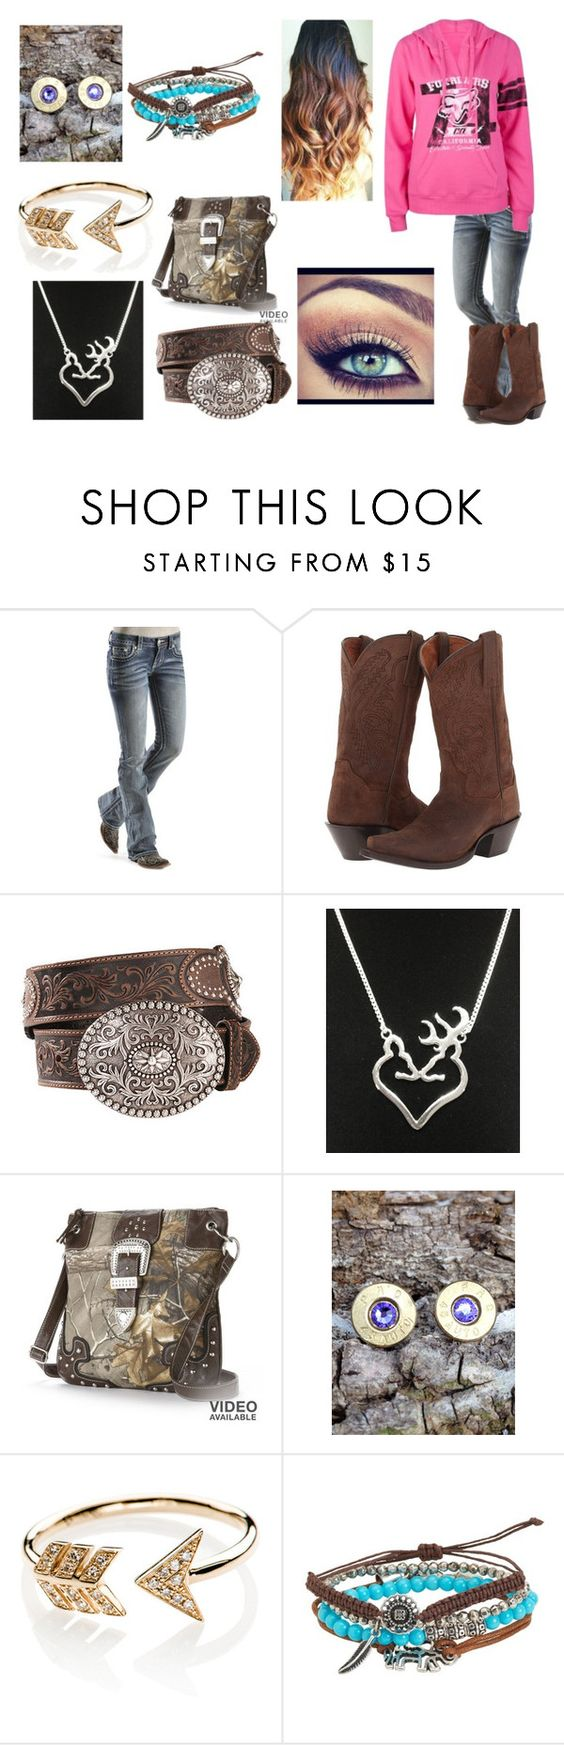 """""""Untitled #710"""" by taylor-loomis ❤ liked on Polyvore featuring Miss Me, Dan Post, Realtree, Bullet, EF Collection and Aéropostale"""